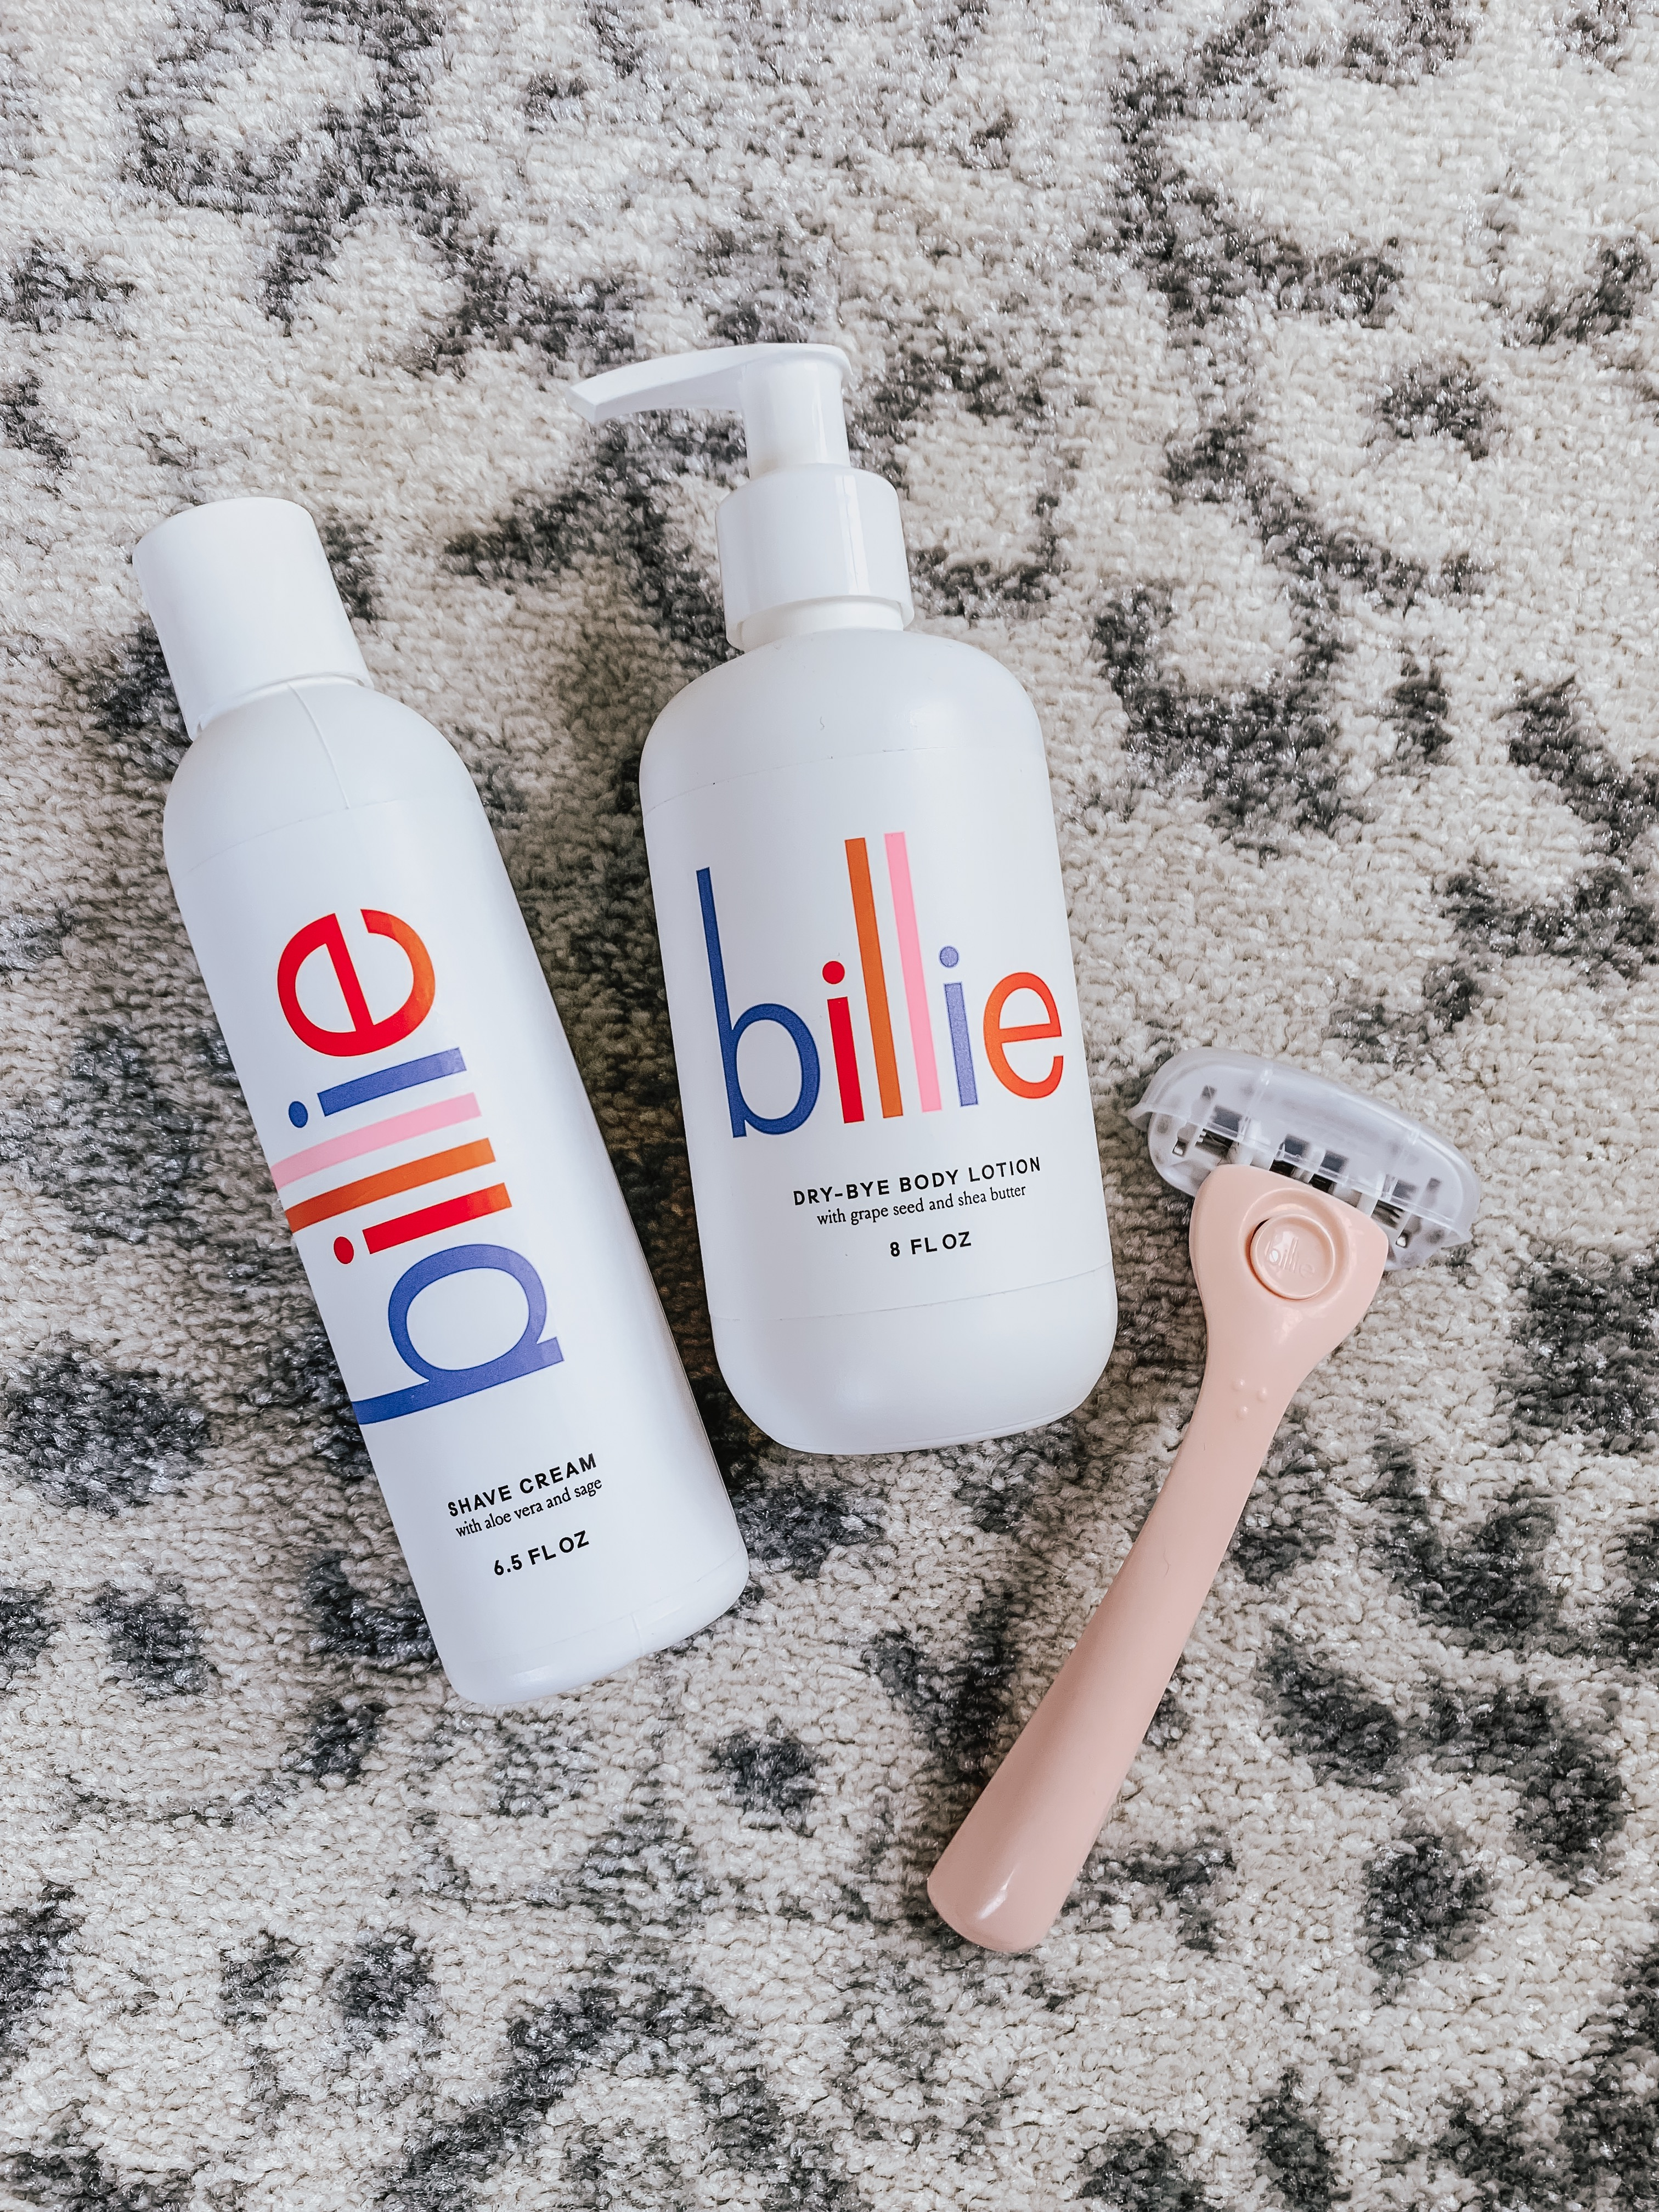 Billie Razor Review | Style Blogger Lauren Meyer shares why she stopped waxing and started shaving with the billie razor!